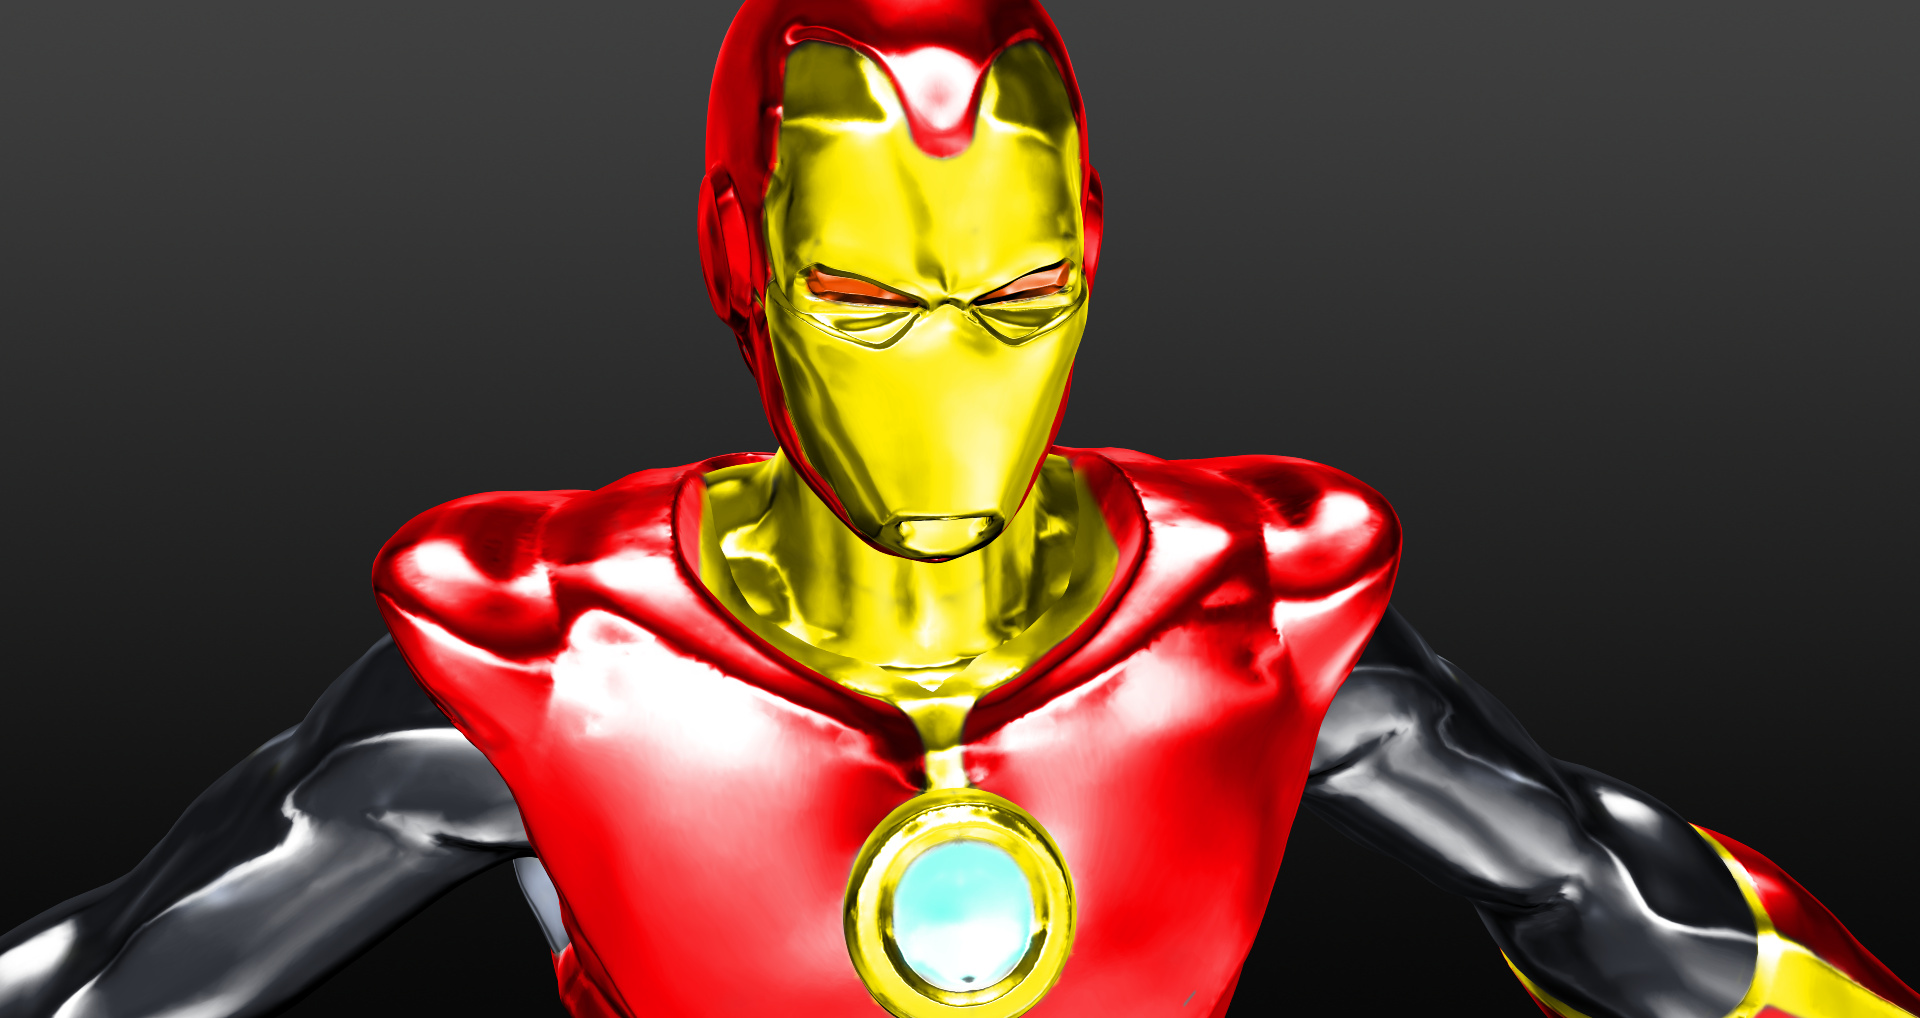 Ironman_Prova24_color3quater_center_sidebig2